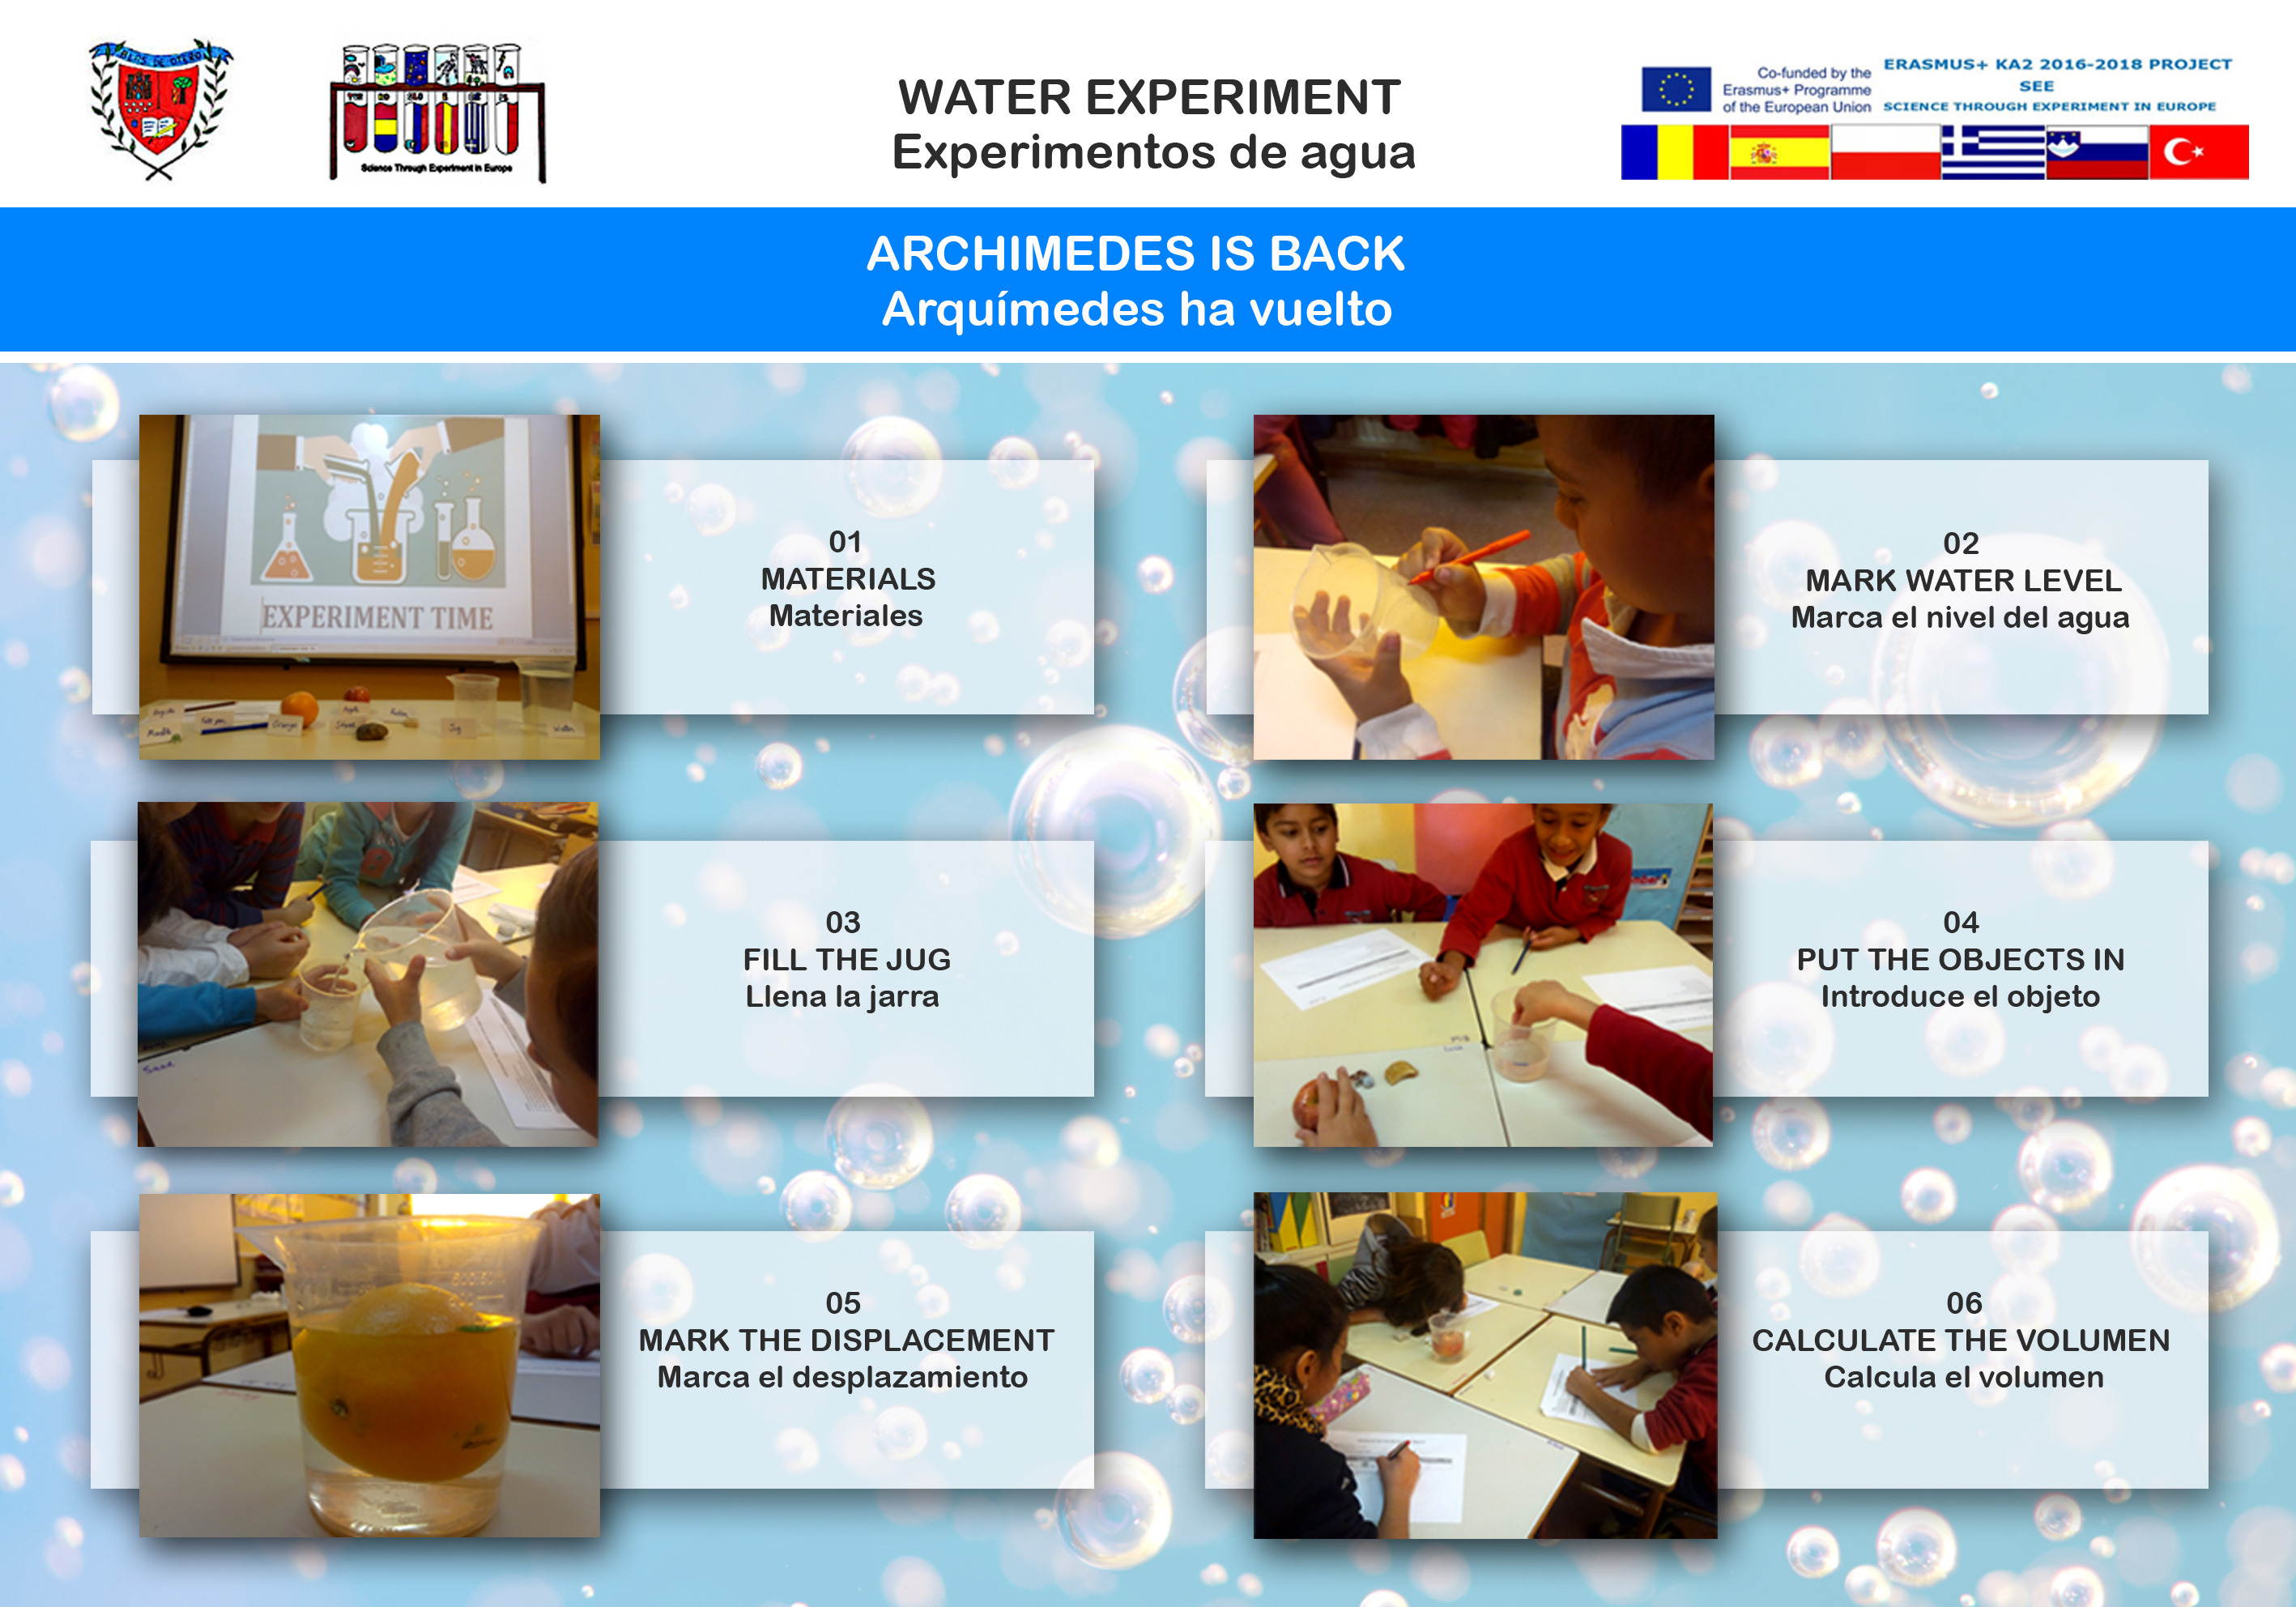 Water experiment 01 Archimedes is back